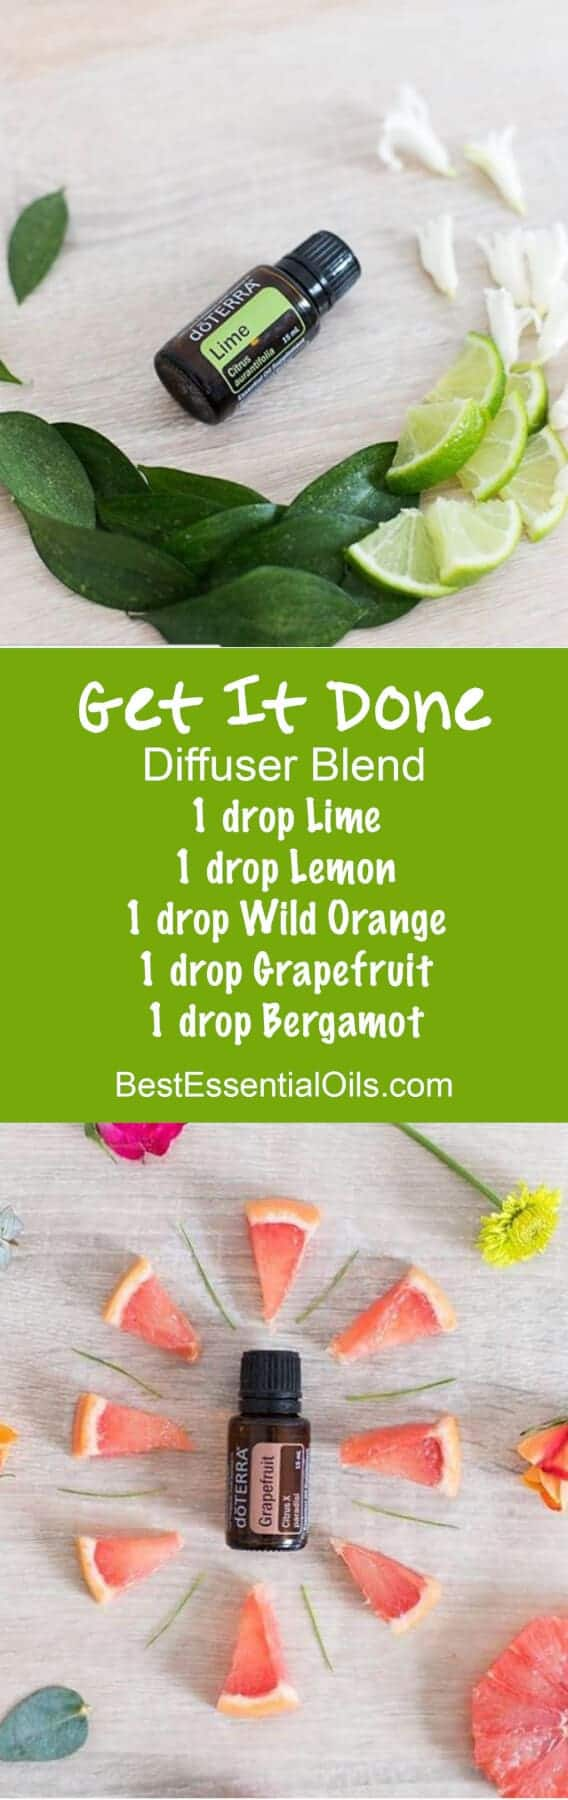 Get It Done doTERRA Diffuser Blend essential oils for motivation